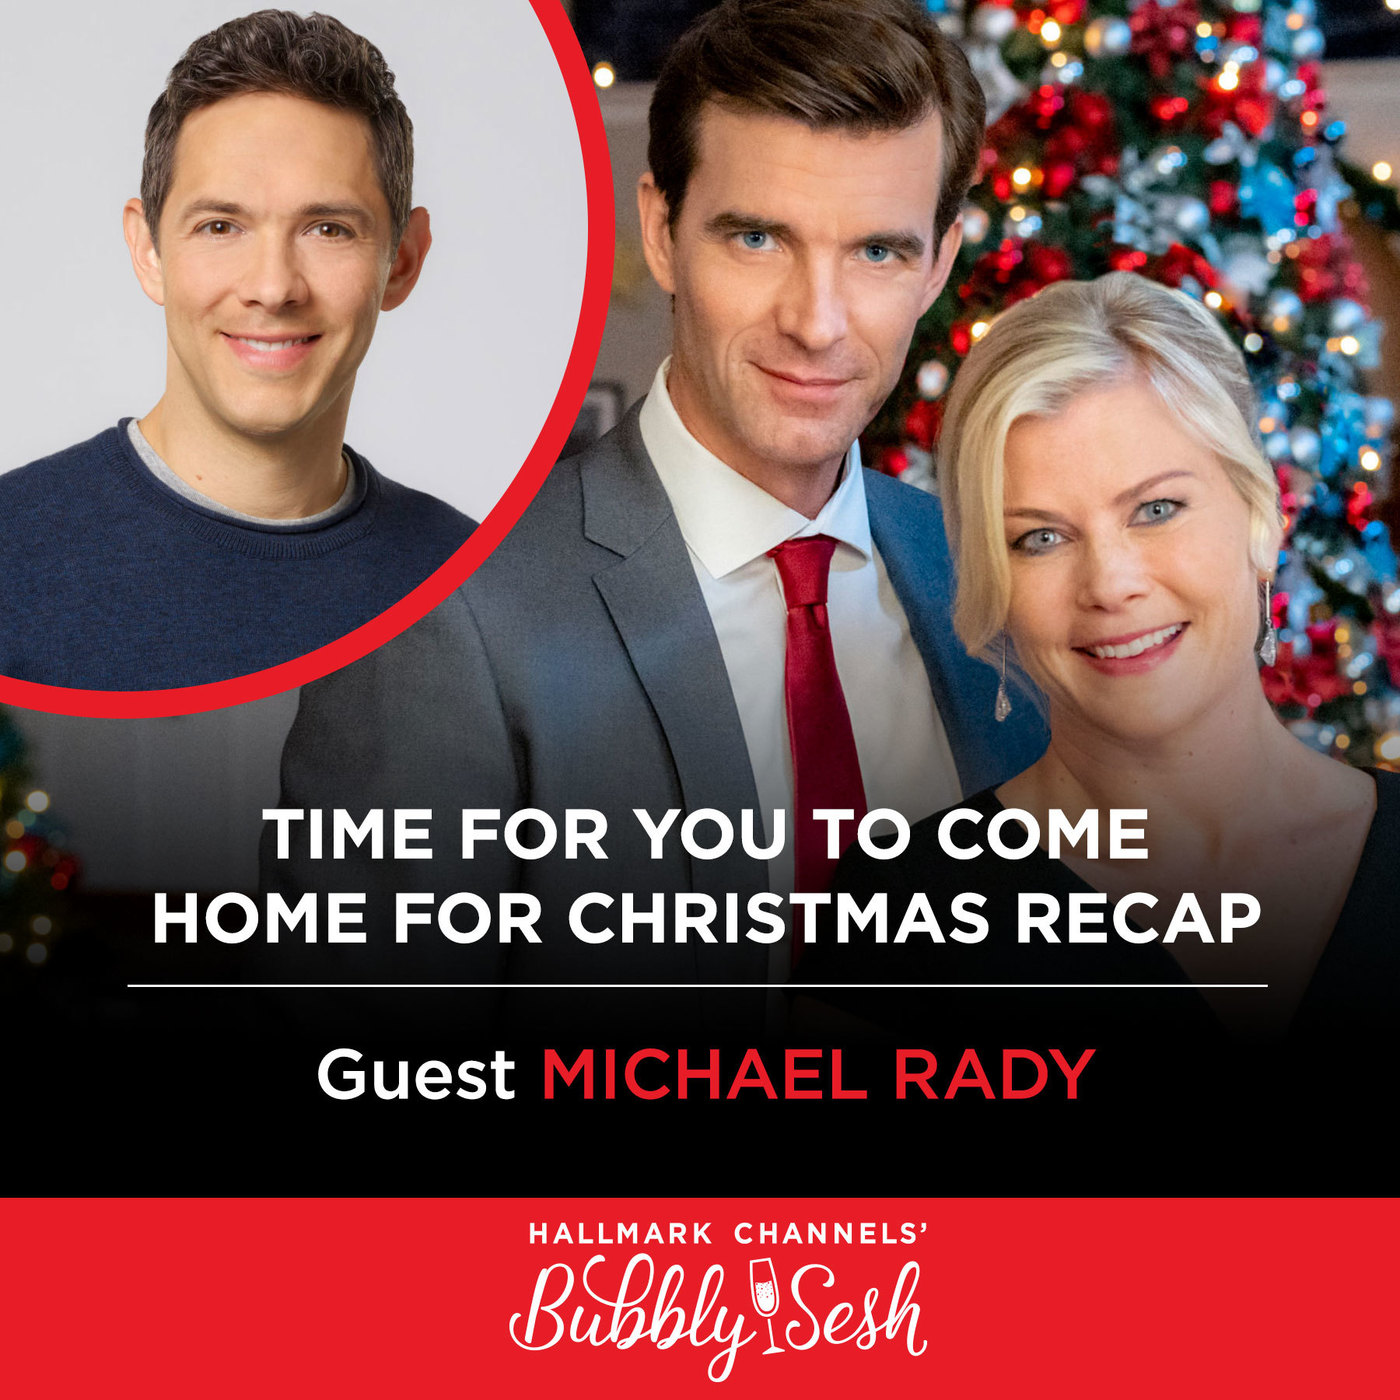 Time for You to Come Home for Christmas Recap with Michael Rady